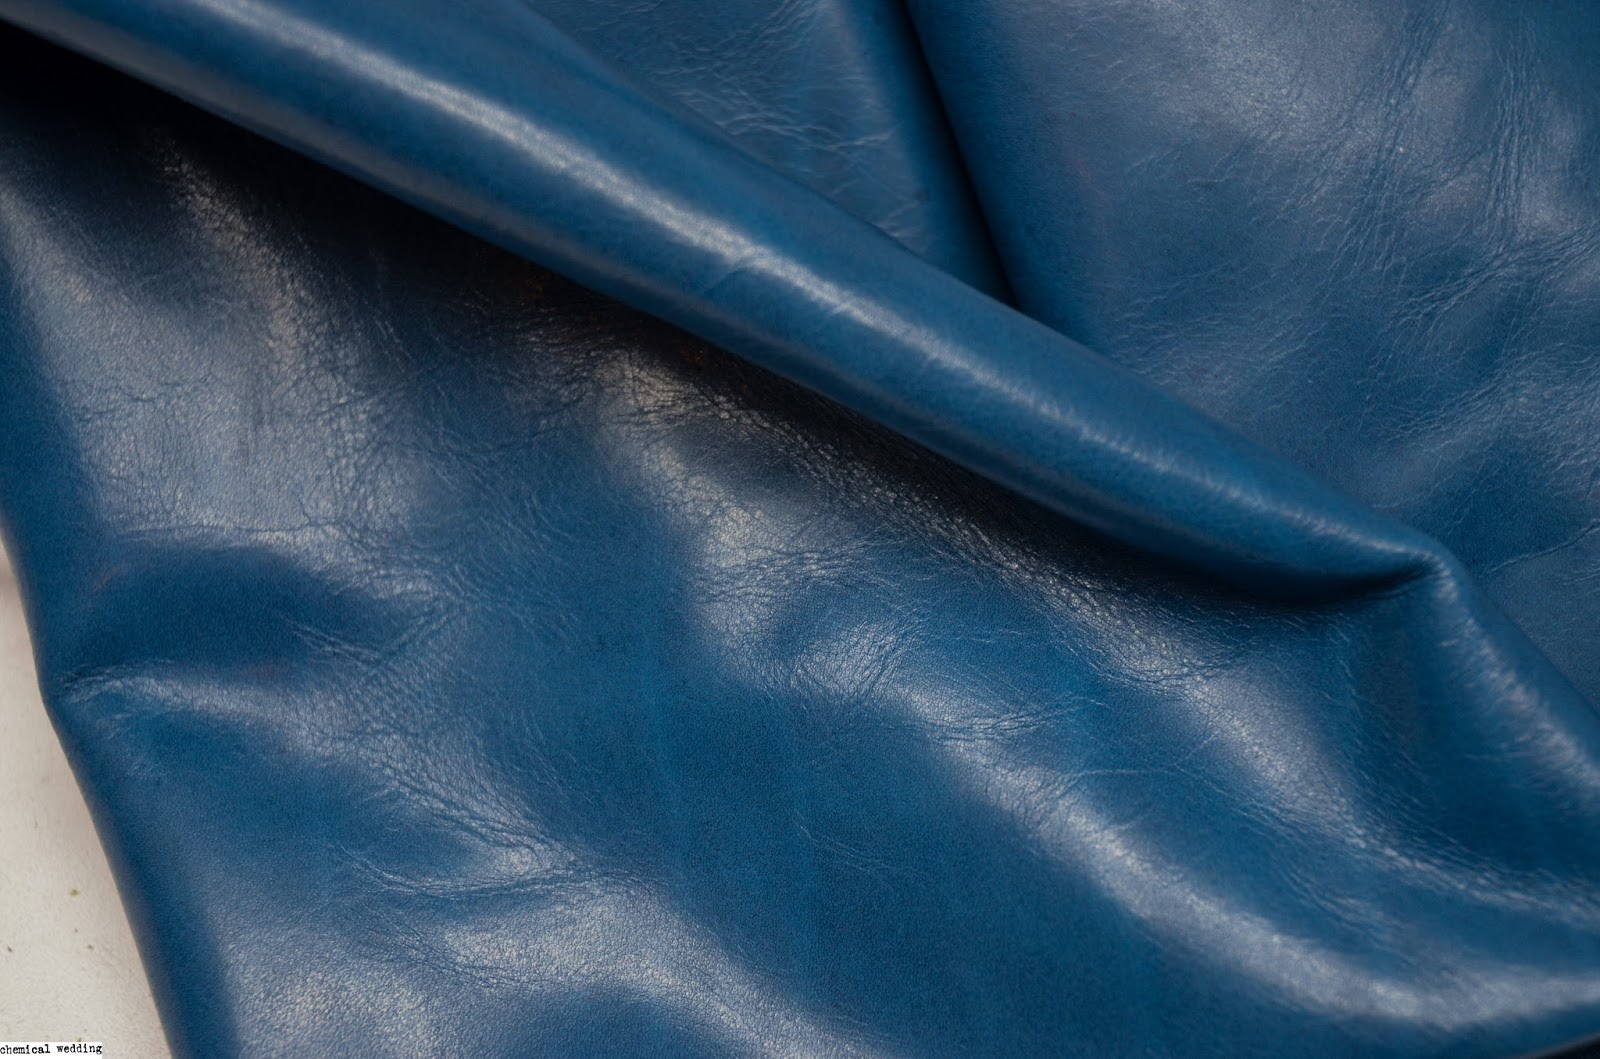 chemical wedding leather swatches edited 4 23 2017 actual